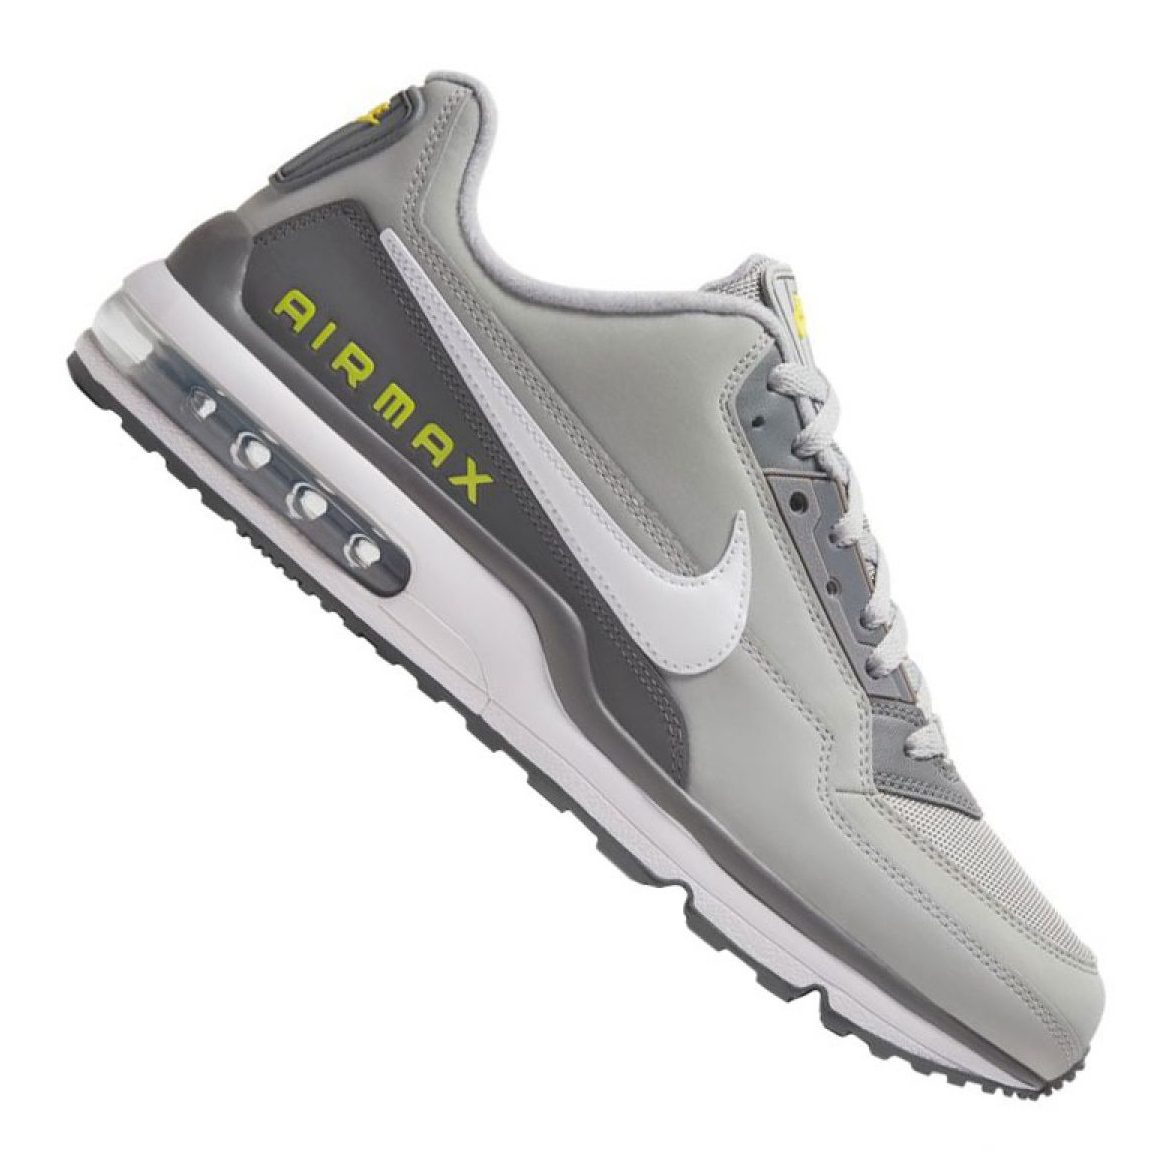 offer discounts buy good good selling Nike Air Max Ltd 3 M CU1925-001 chaussures gris | eBay